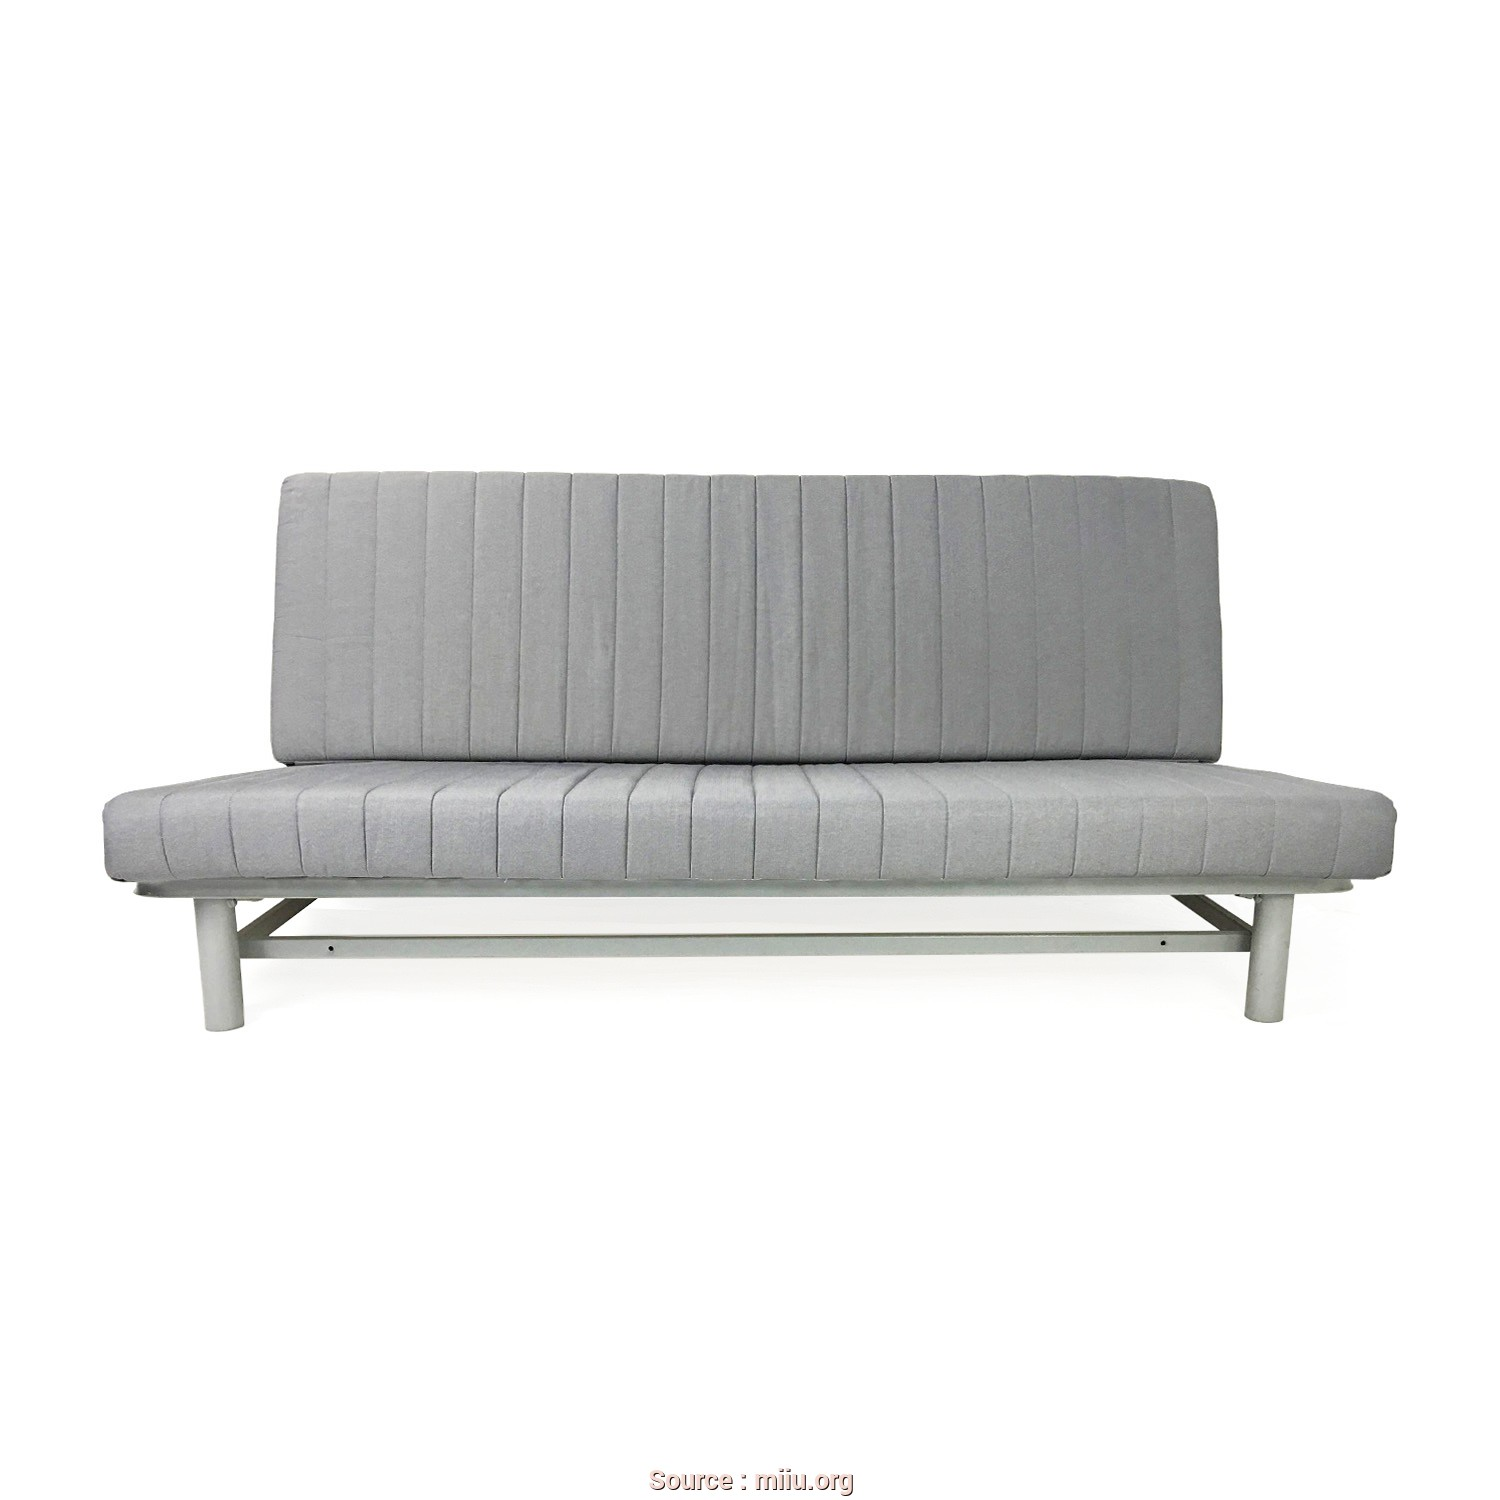 Backabro Ecksofa Sofa Ikea Backabro Fantasia 4 Ikea Online Backabro Jake Vintage